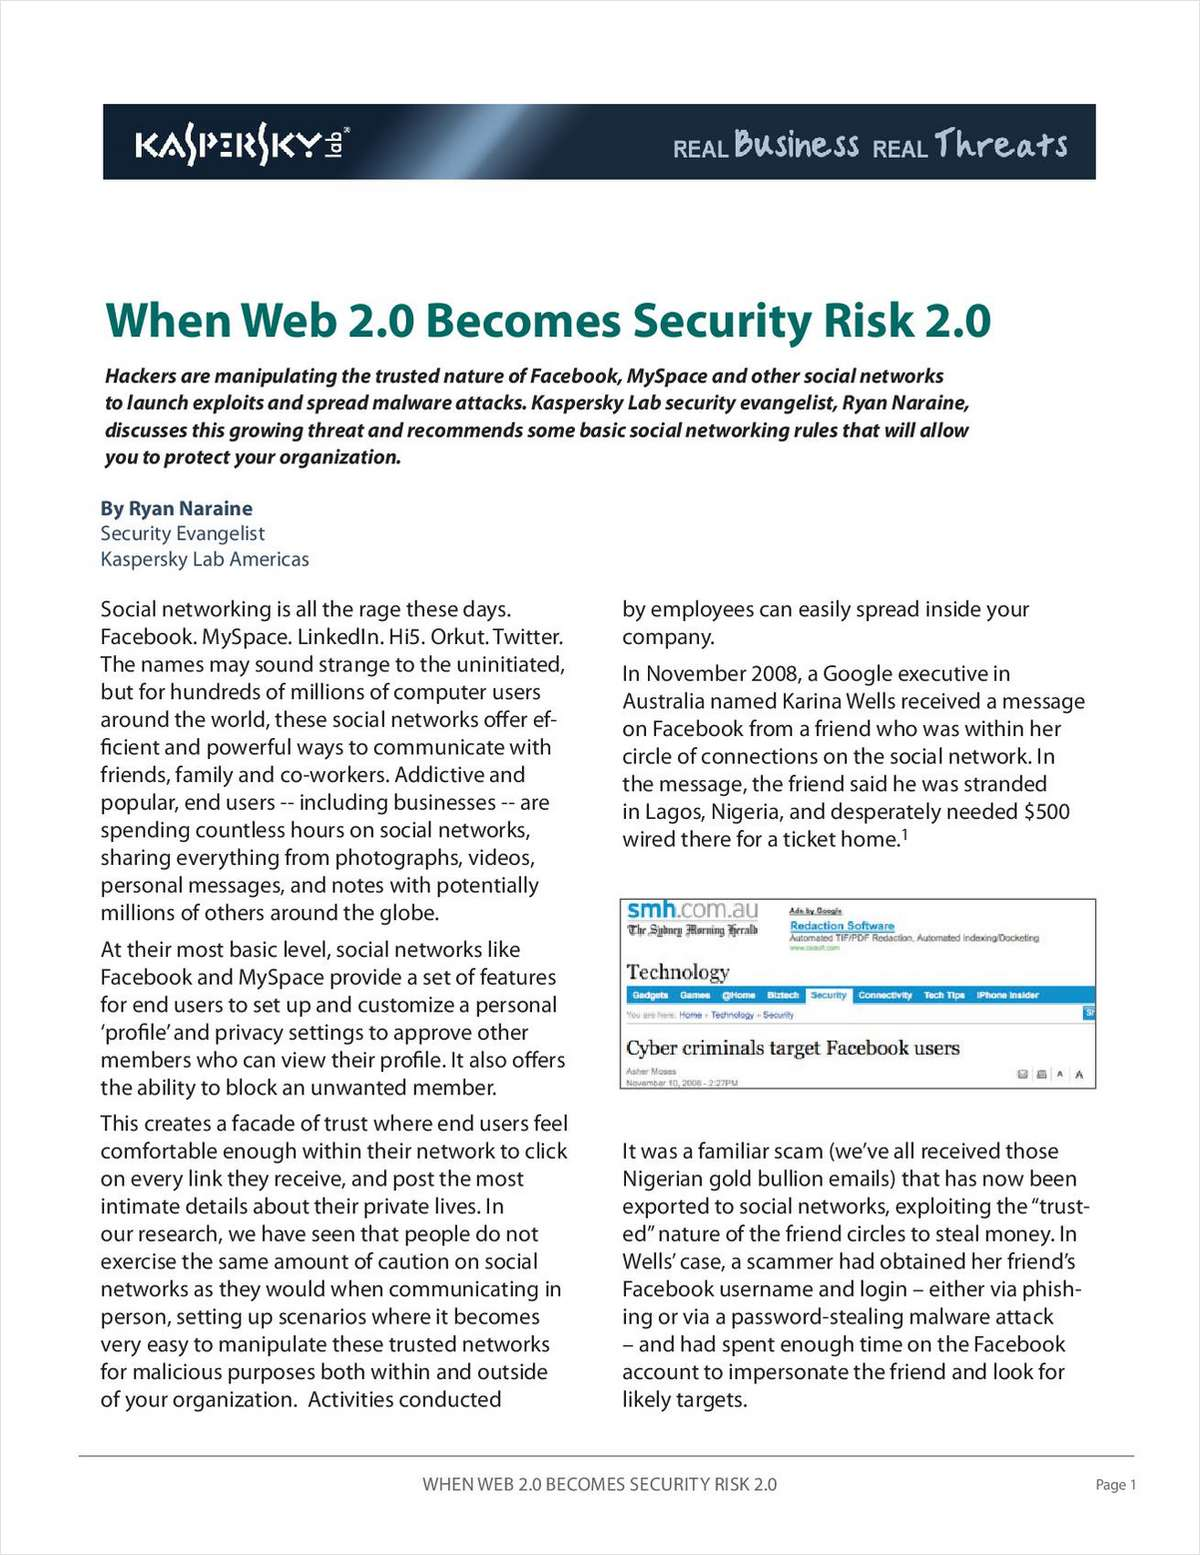 When Web 2.0 Becomes Security Risk 2.0